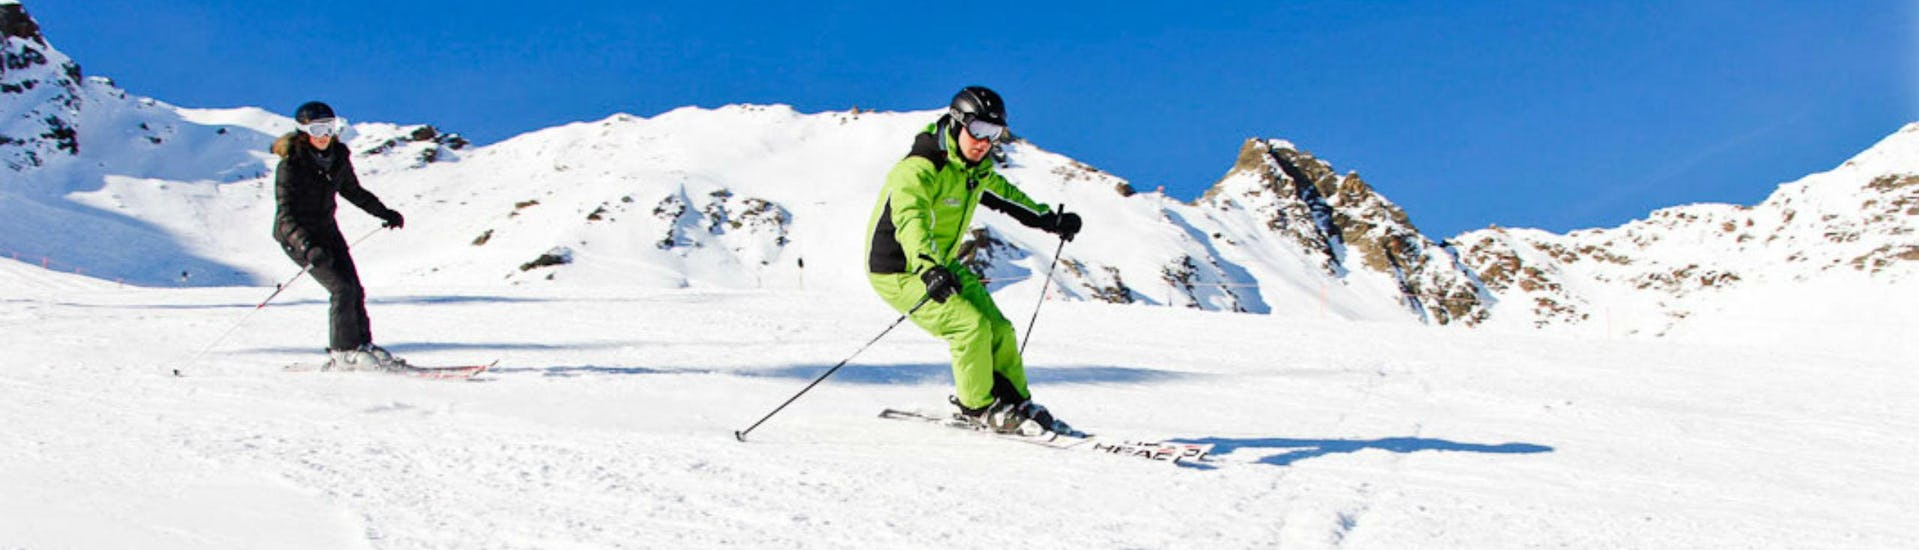 A female skier is following her ski instructor from the ski school Ski- und Bikeschule Ötztal Sölden during her Ski Lessons for Teens & Adults - All Levels.